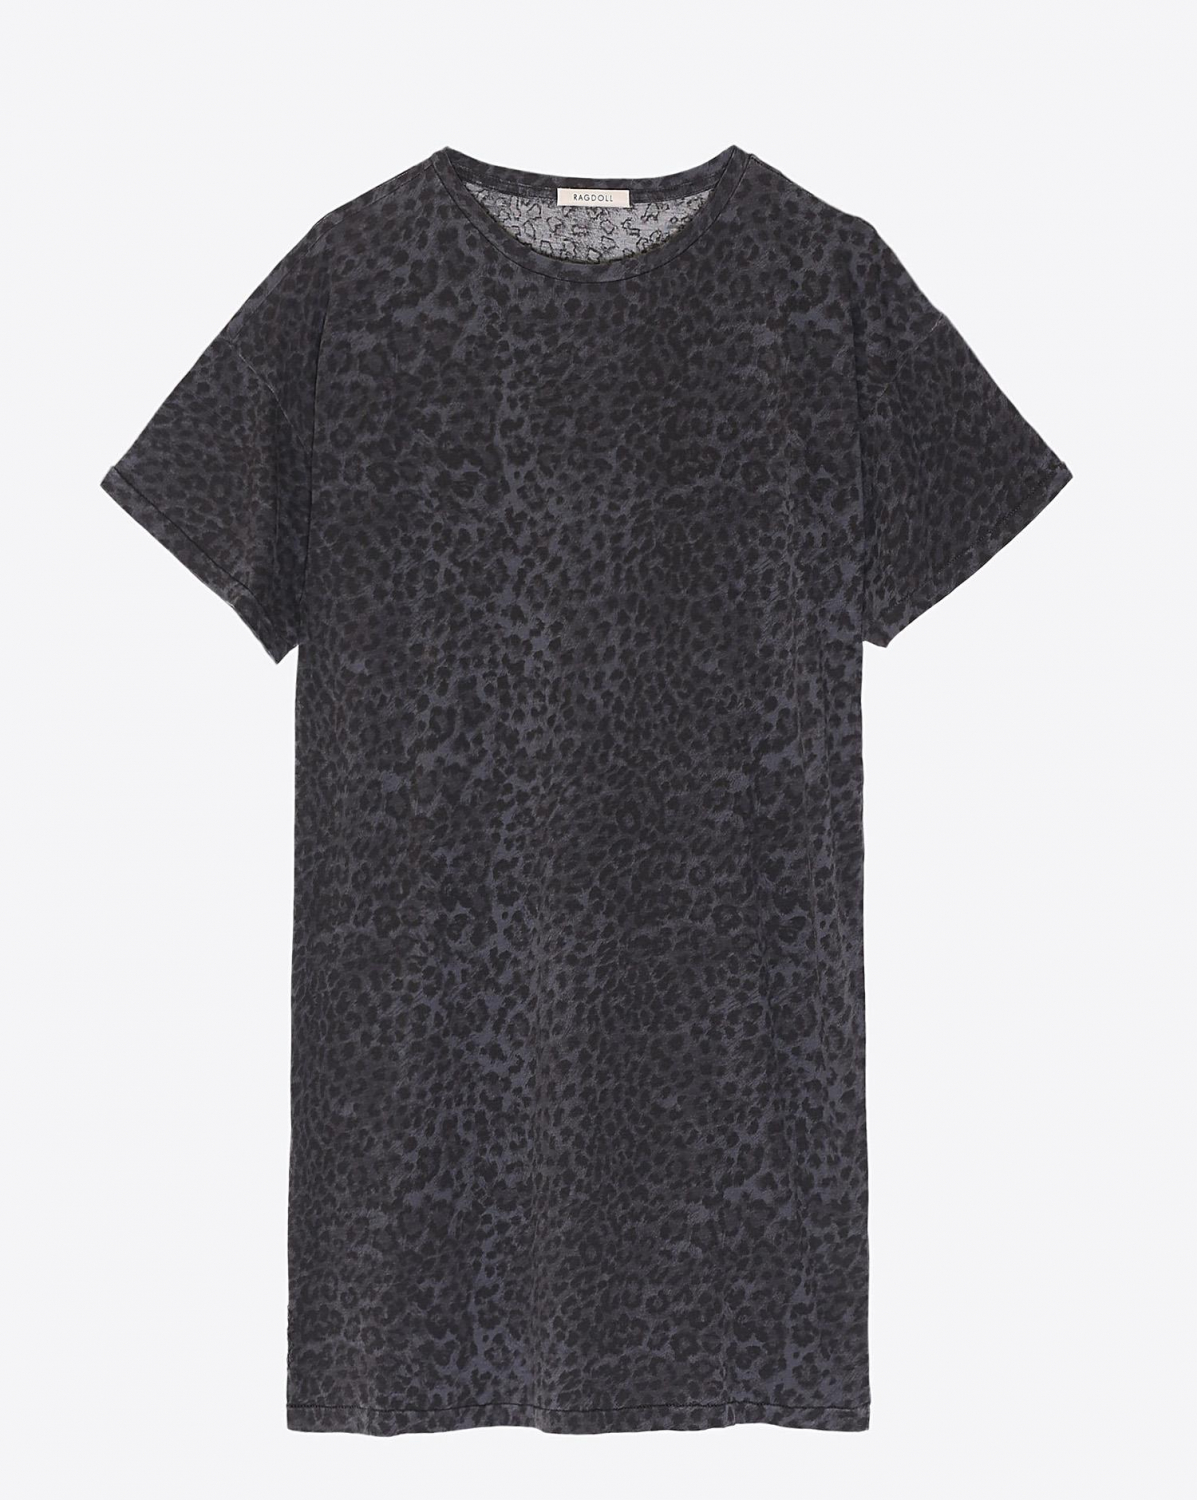 Ragdoll LA Tee Shirt Dress Grey Leopard